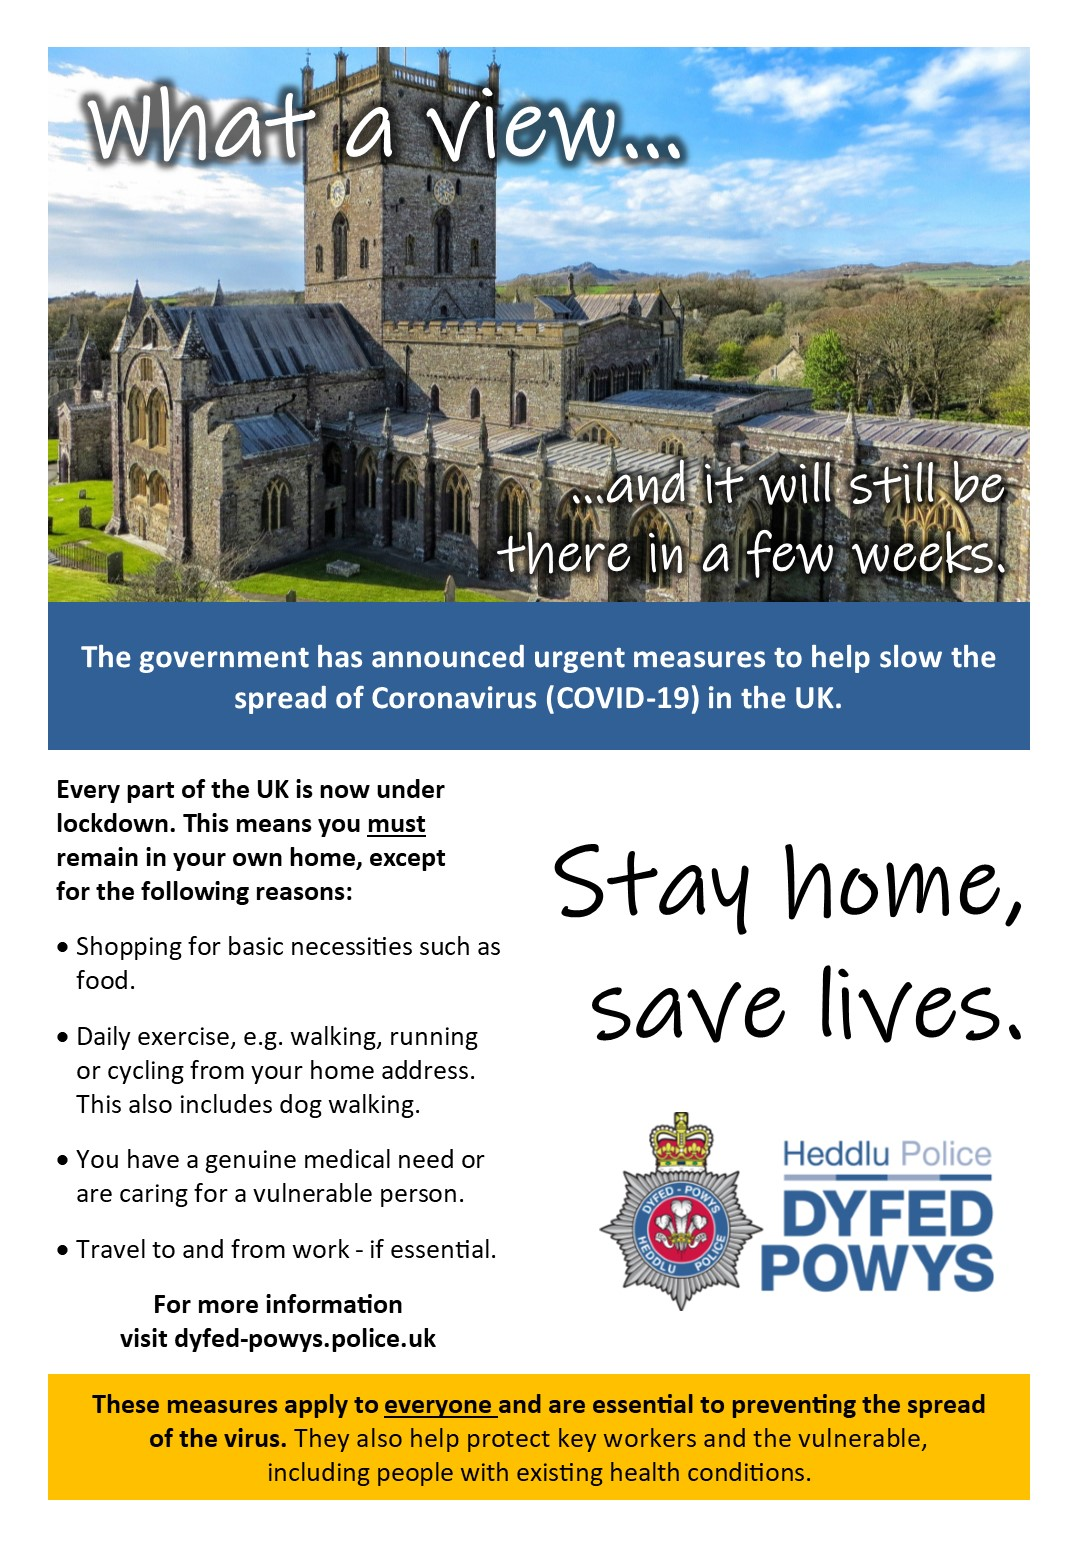 Police in Pembrokeshire are distributing flyers warning of the locksdown (Dyfed-Powys Police/PA)